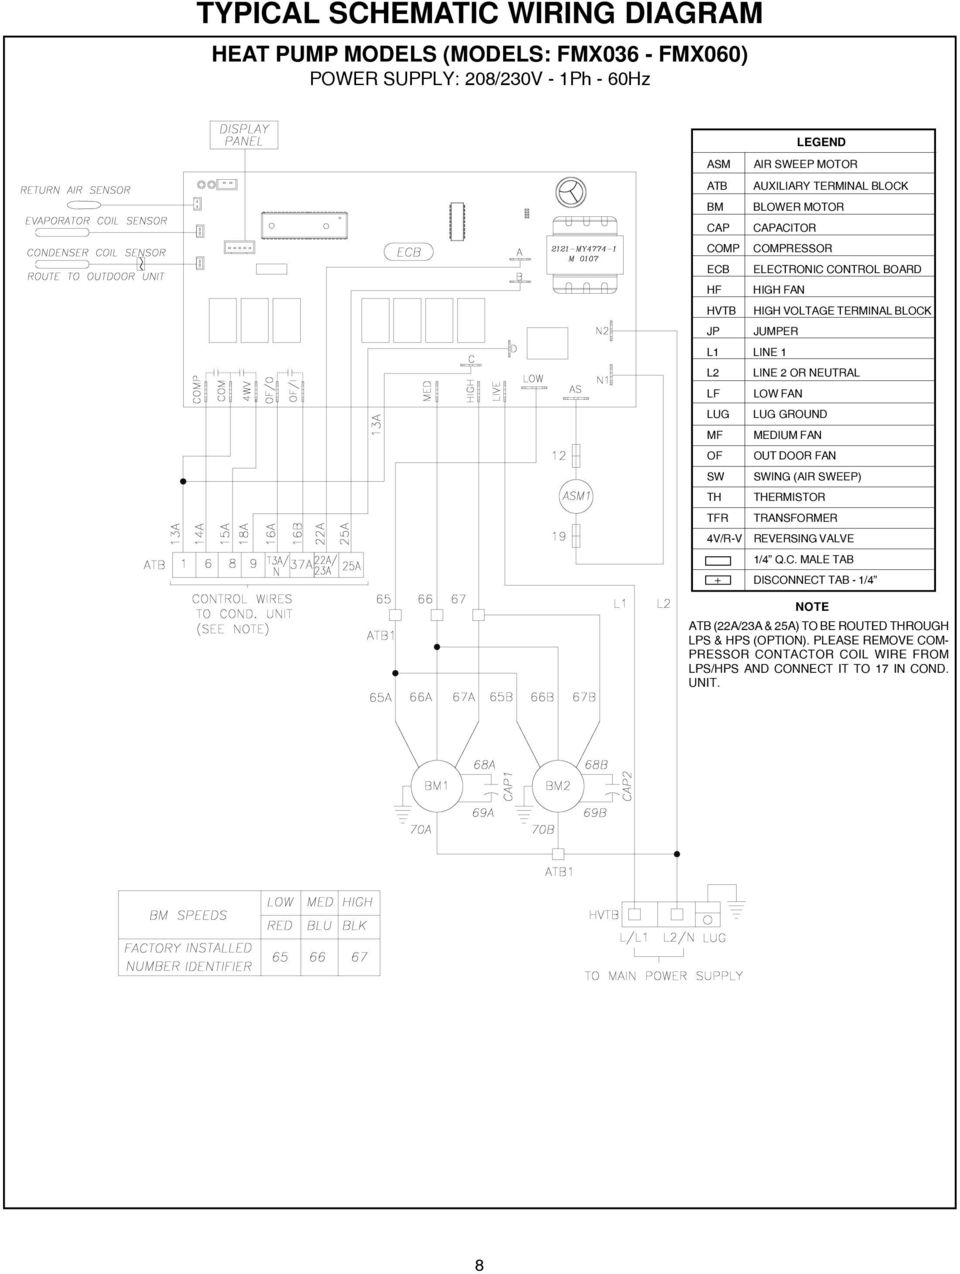 lafert motor wiring diagram circuit diagram maker